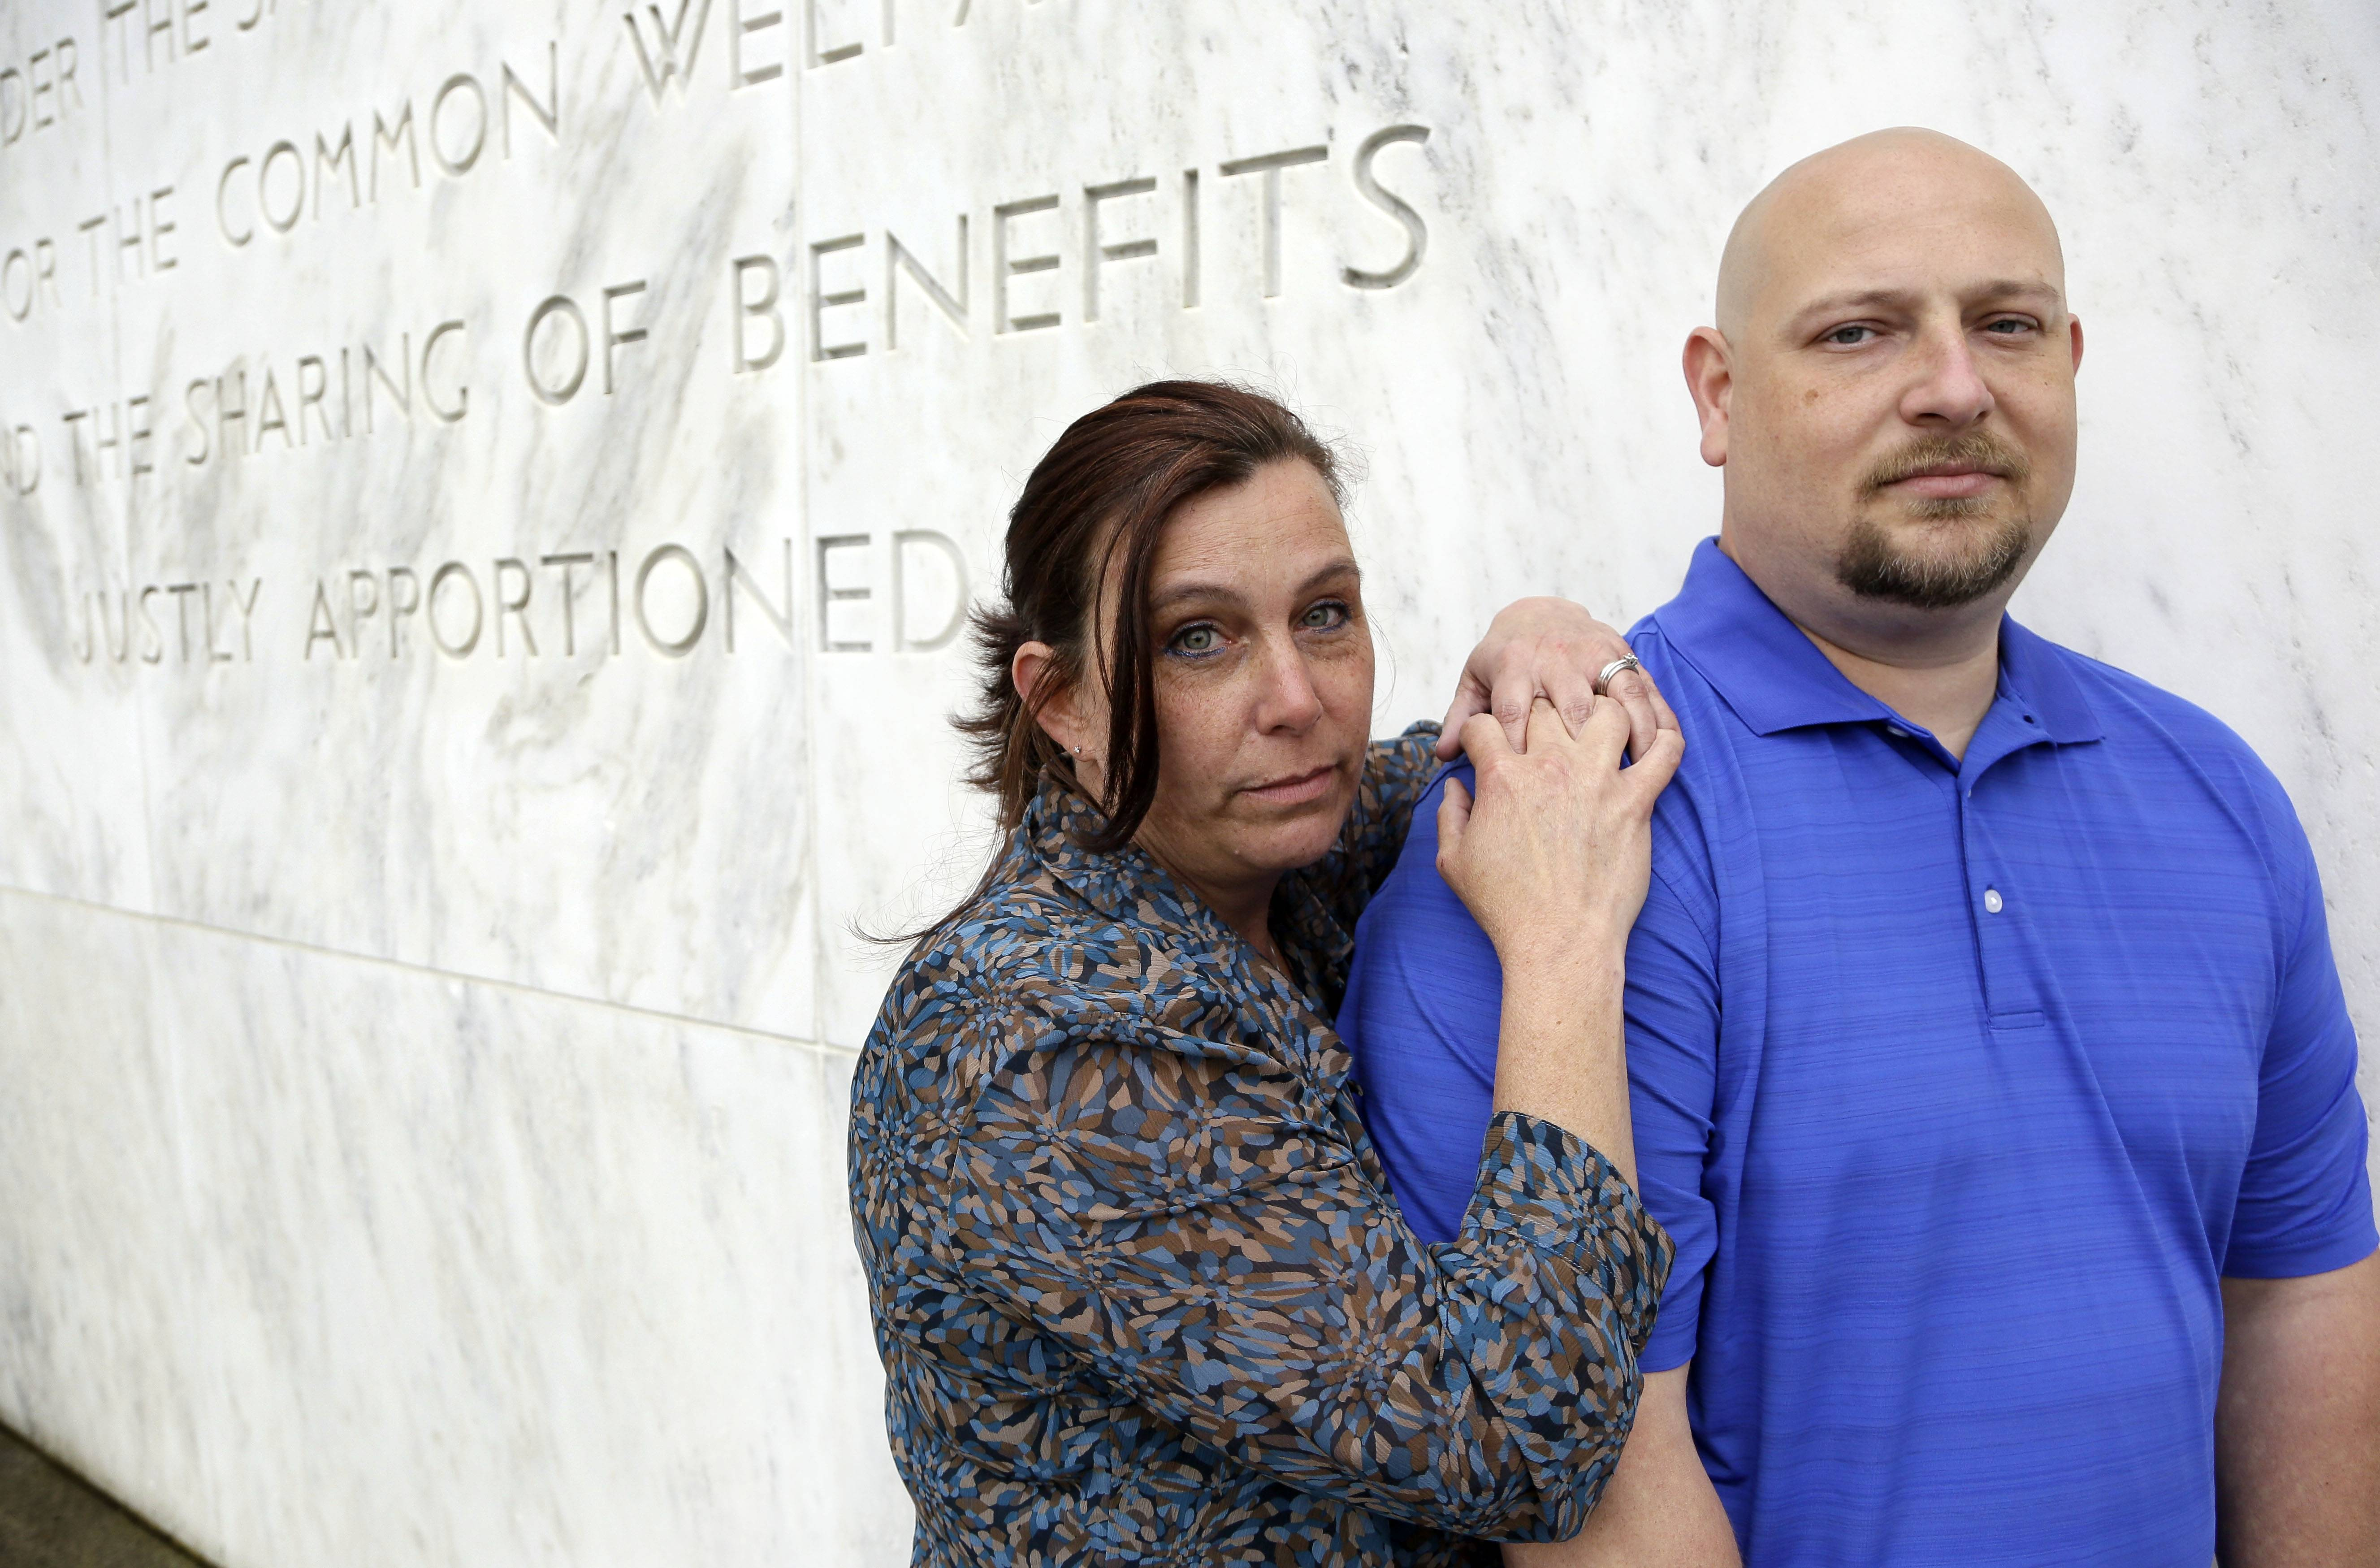 Spartanburg, S.C., sheriff's deputy Brandon Bentley, poses for a photo with his wife, retired Salem, Ore., police department officer Kelly Clark. Bentley's appeal to the South Carolina Supreme Court on a post-traumatic stress disorder claim was denied, stating the law did not provide mental health benefits for officers because they are trained in the use of deadly force and know that they may have to use it.